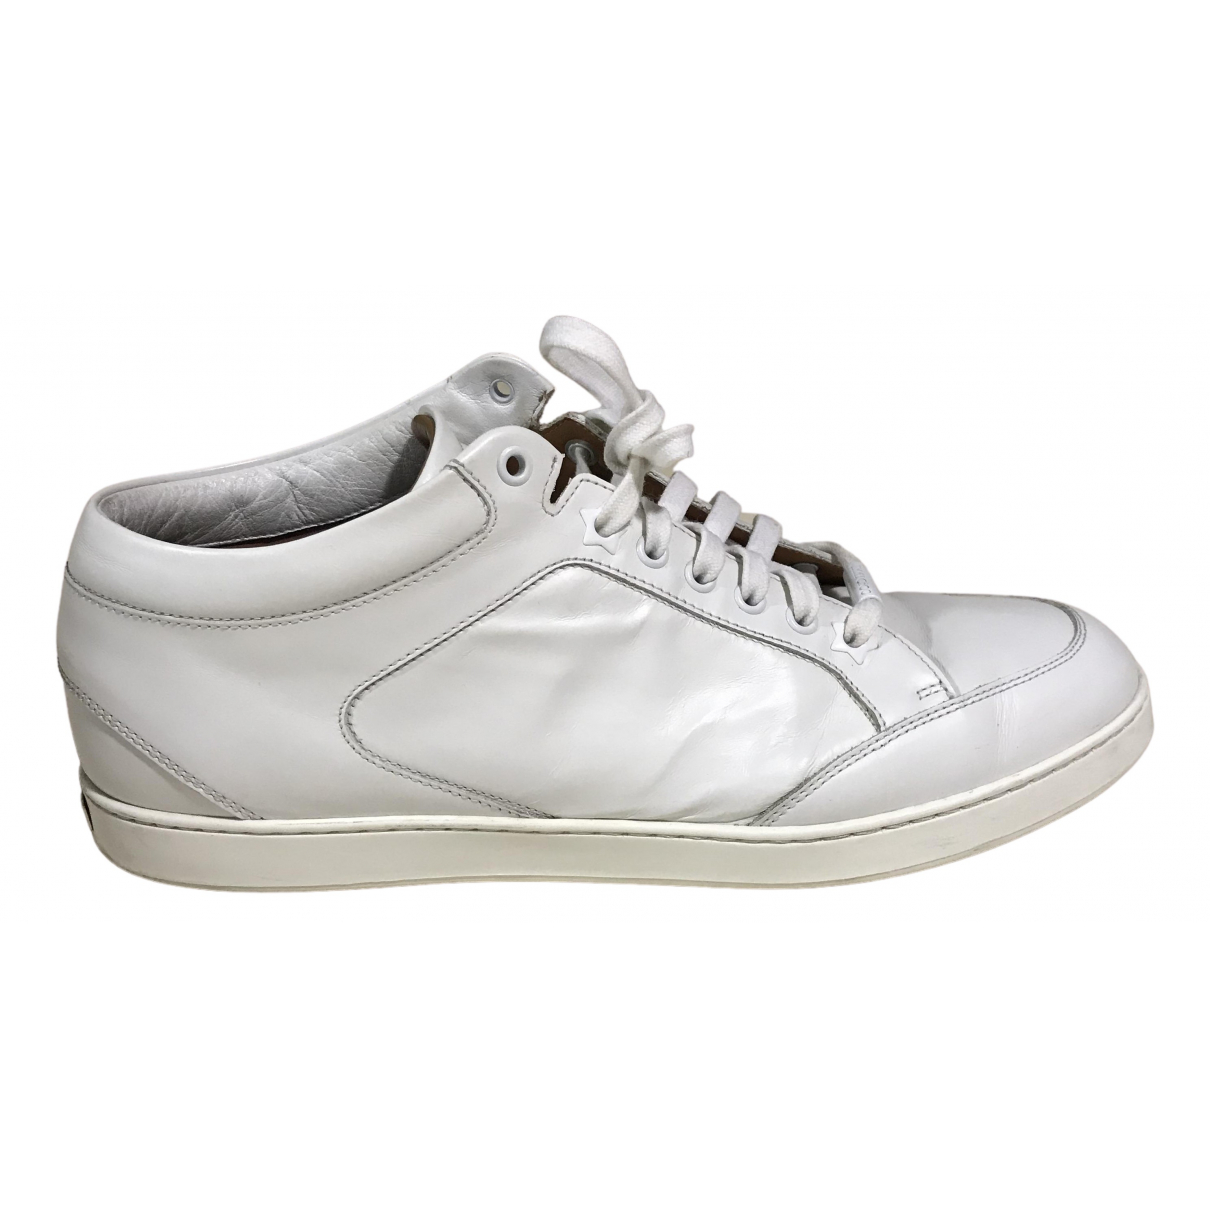 Jimmy Choo N White Leather Trainers for Women 42 IT